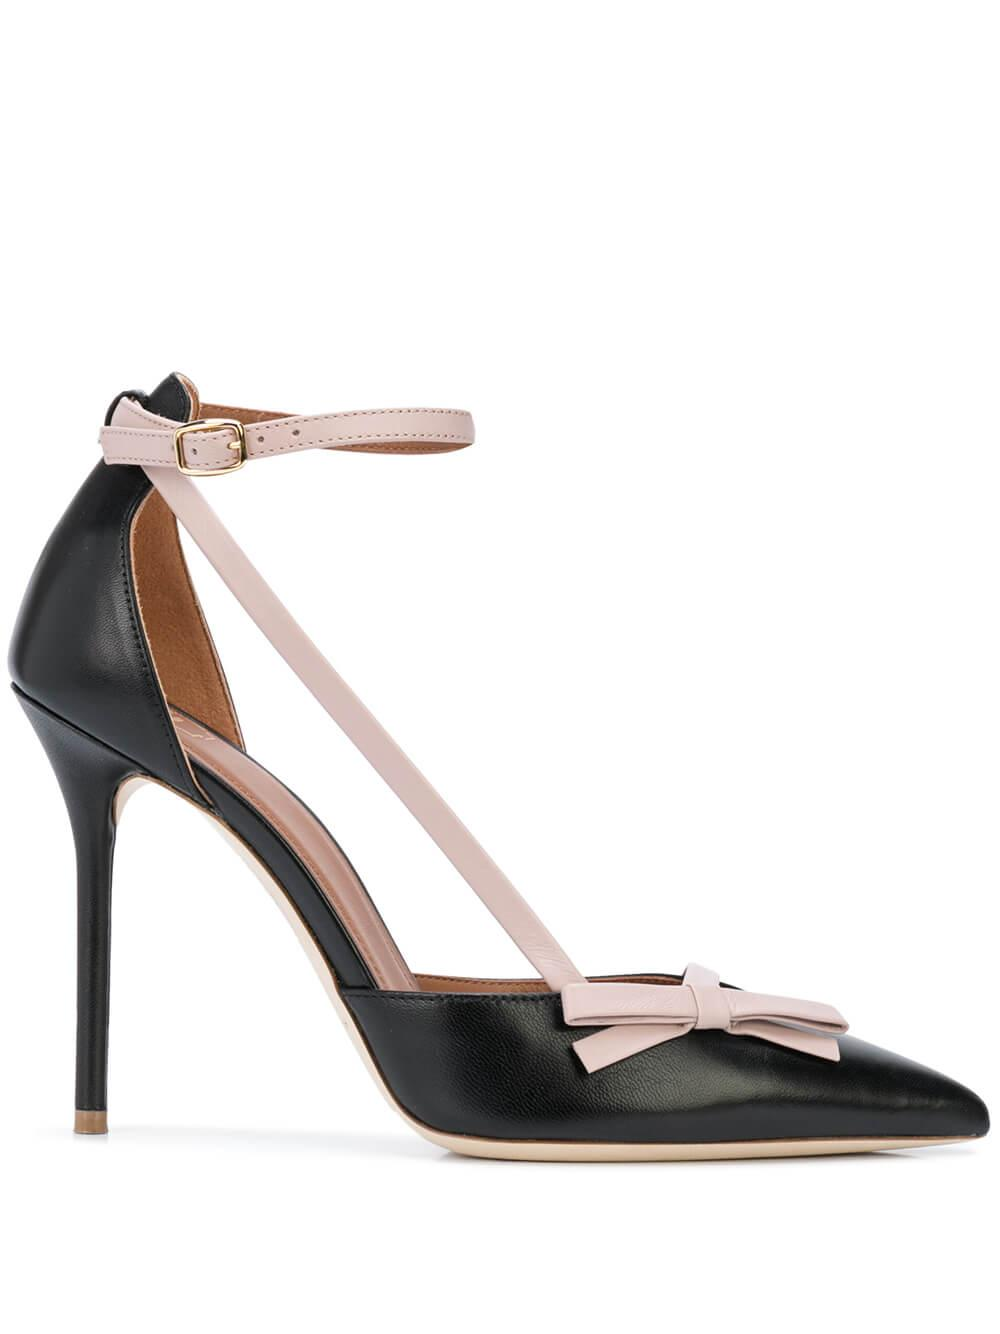 Nappa 100m Ankle Strap Pump With Bow Item # JOSIE100-1